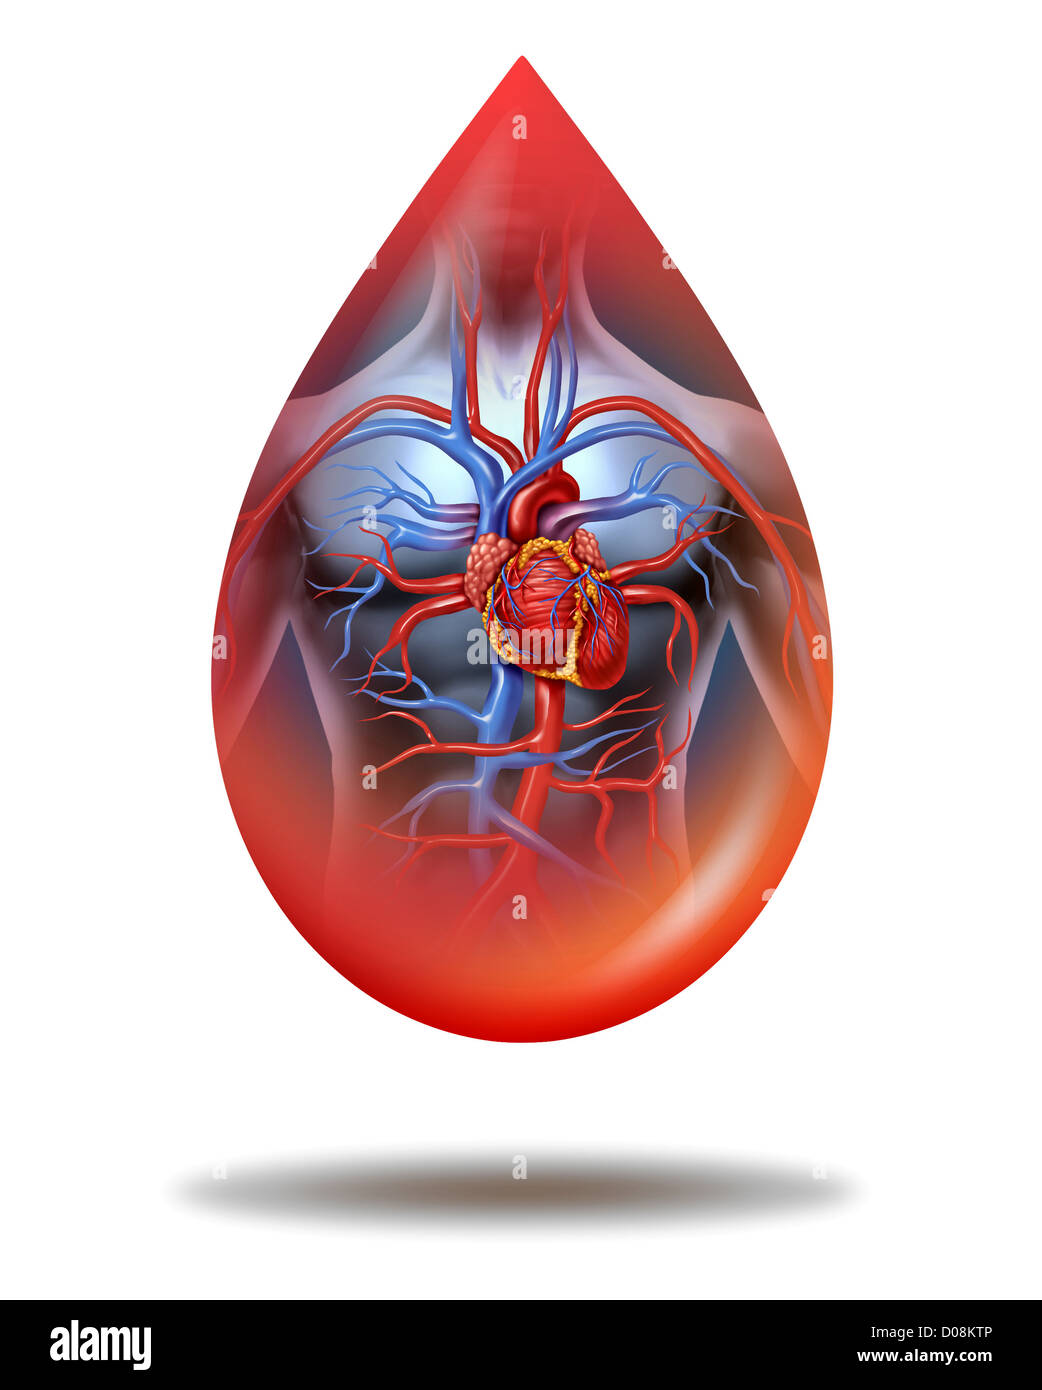 Human Heart Blood Drop With A Human Body Anatomy And Cardiovascular